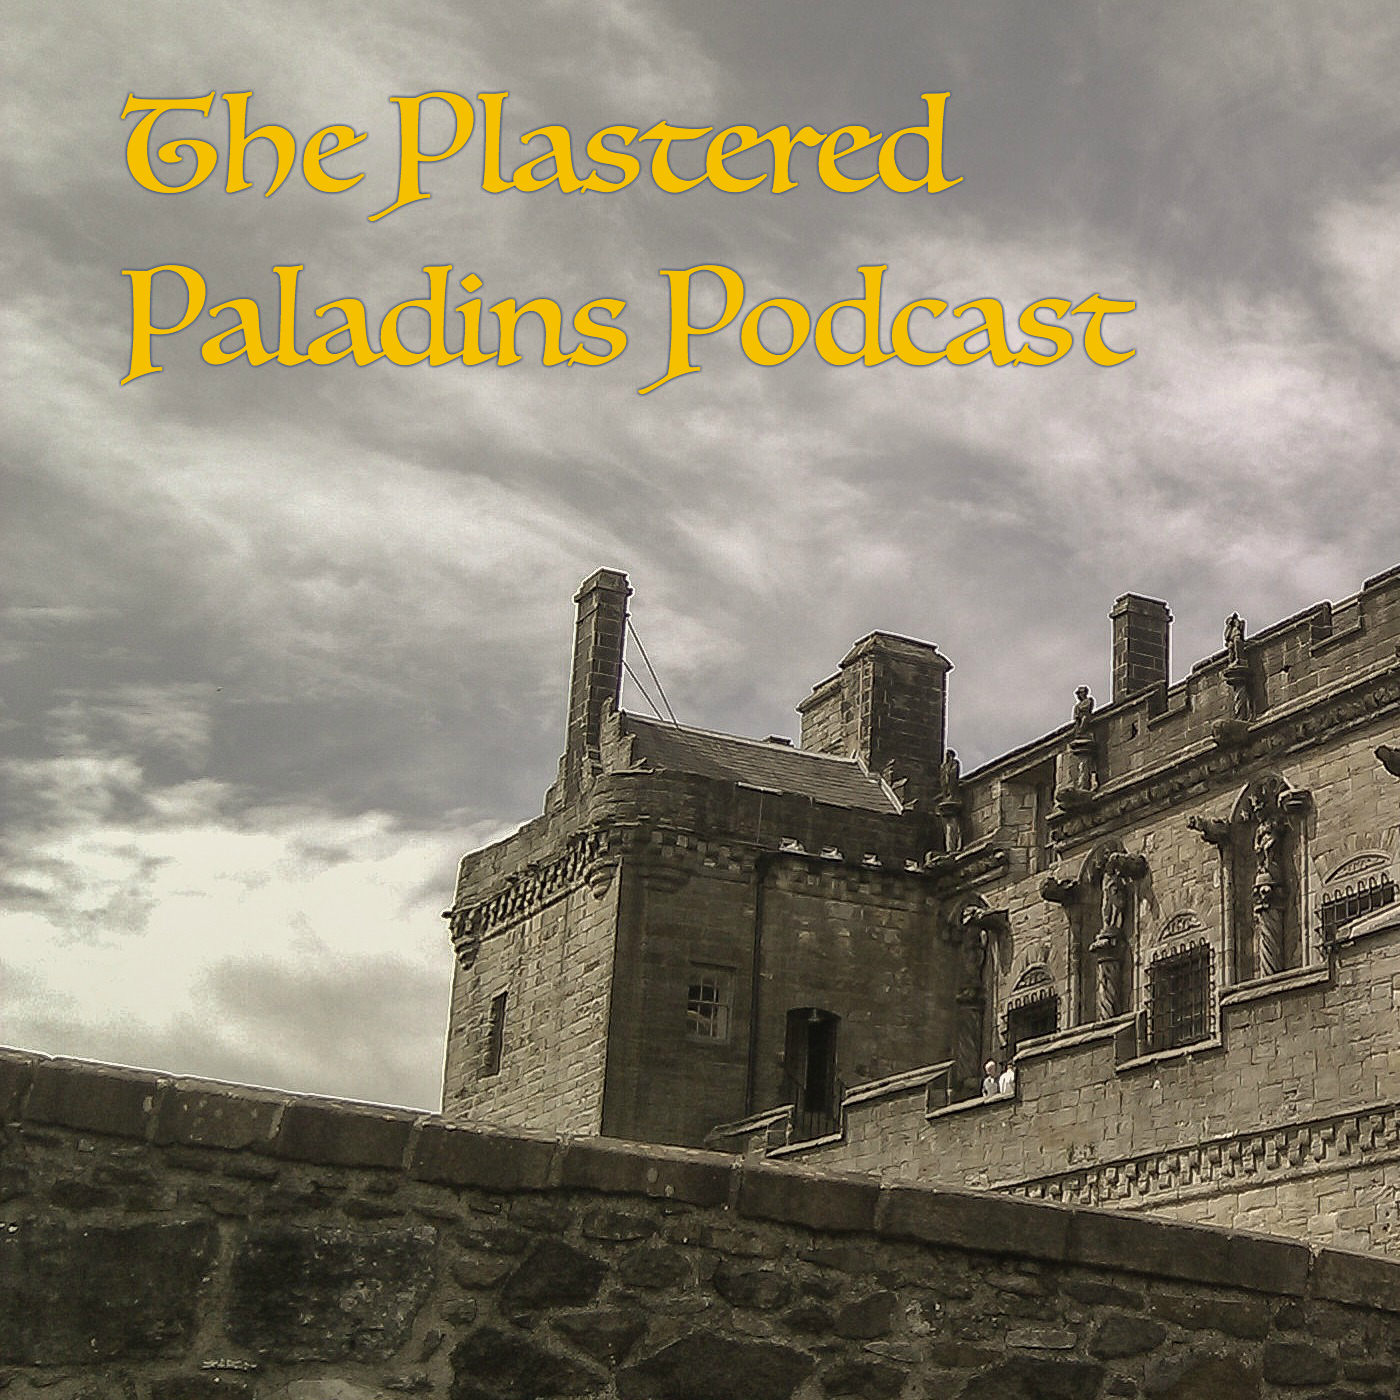 The Plastered Paladins Episode 44: Hugh Hefner Died